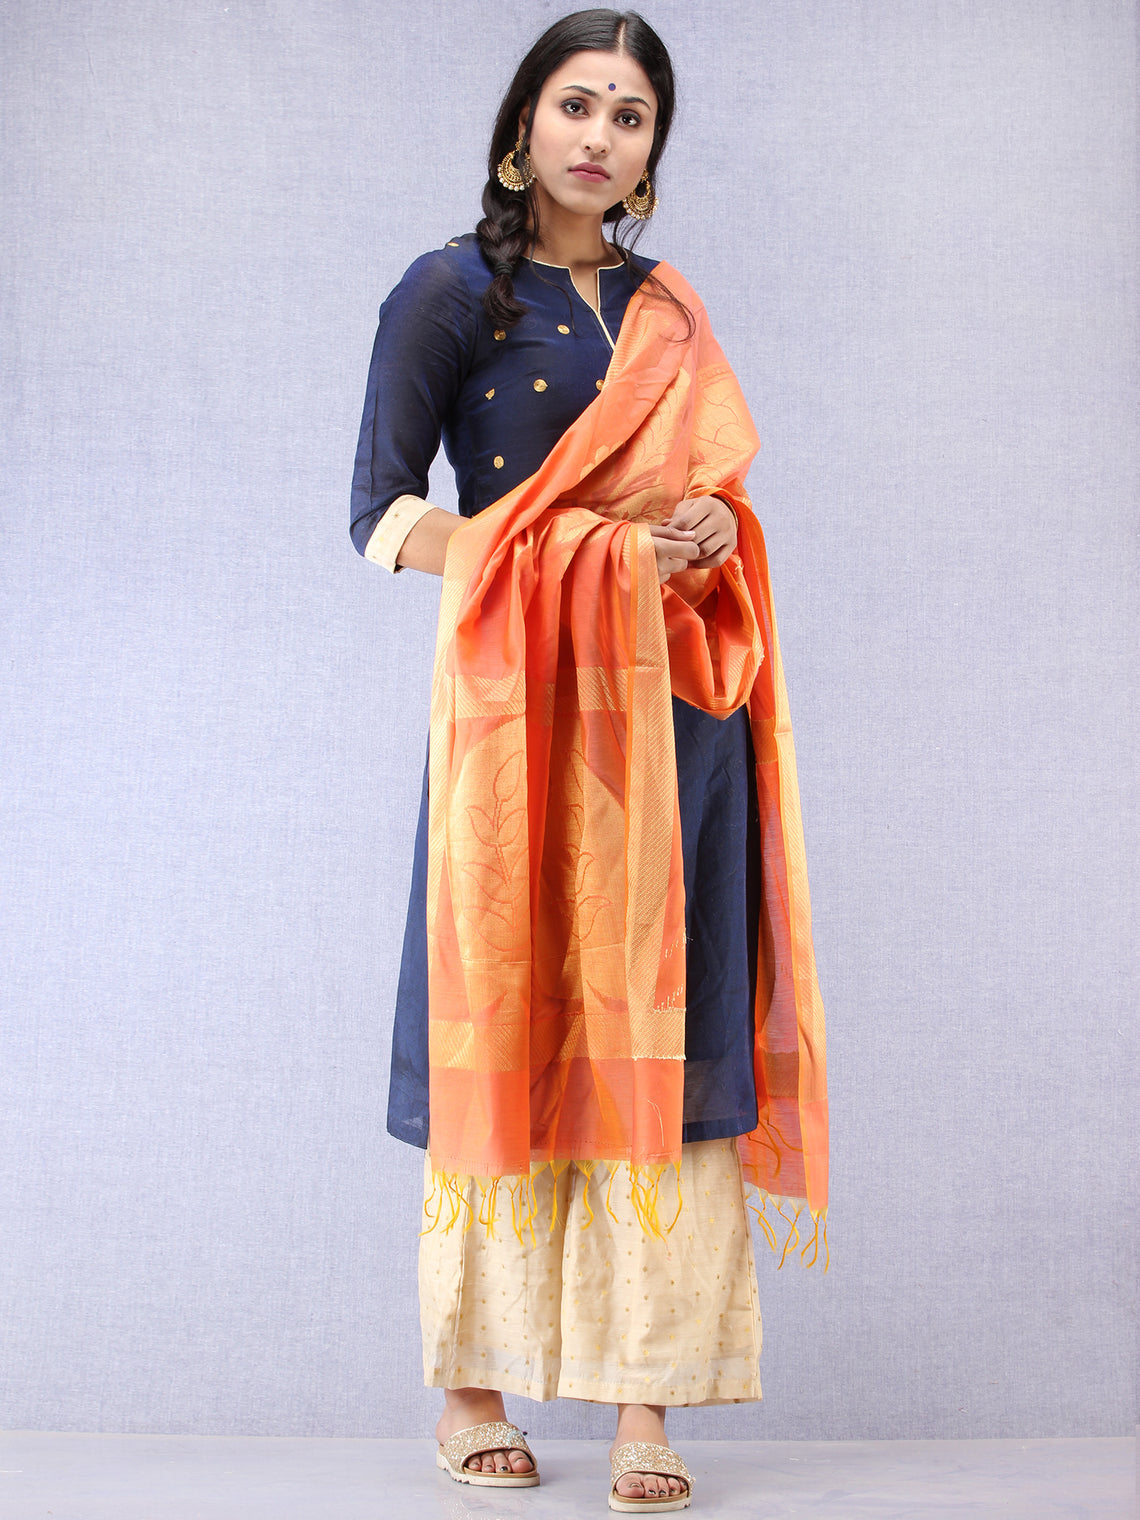 Banarasi Chanderi Dupatta With Zari Work - Peach & Gold - D04170792